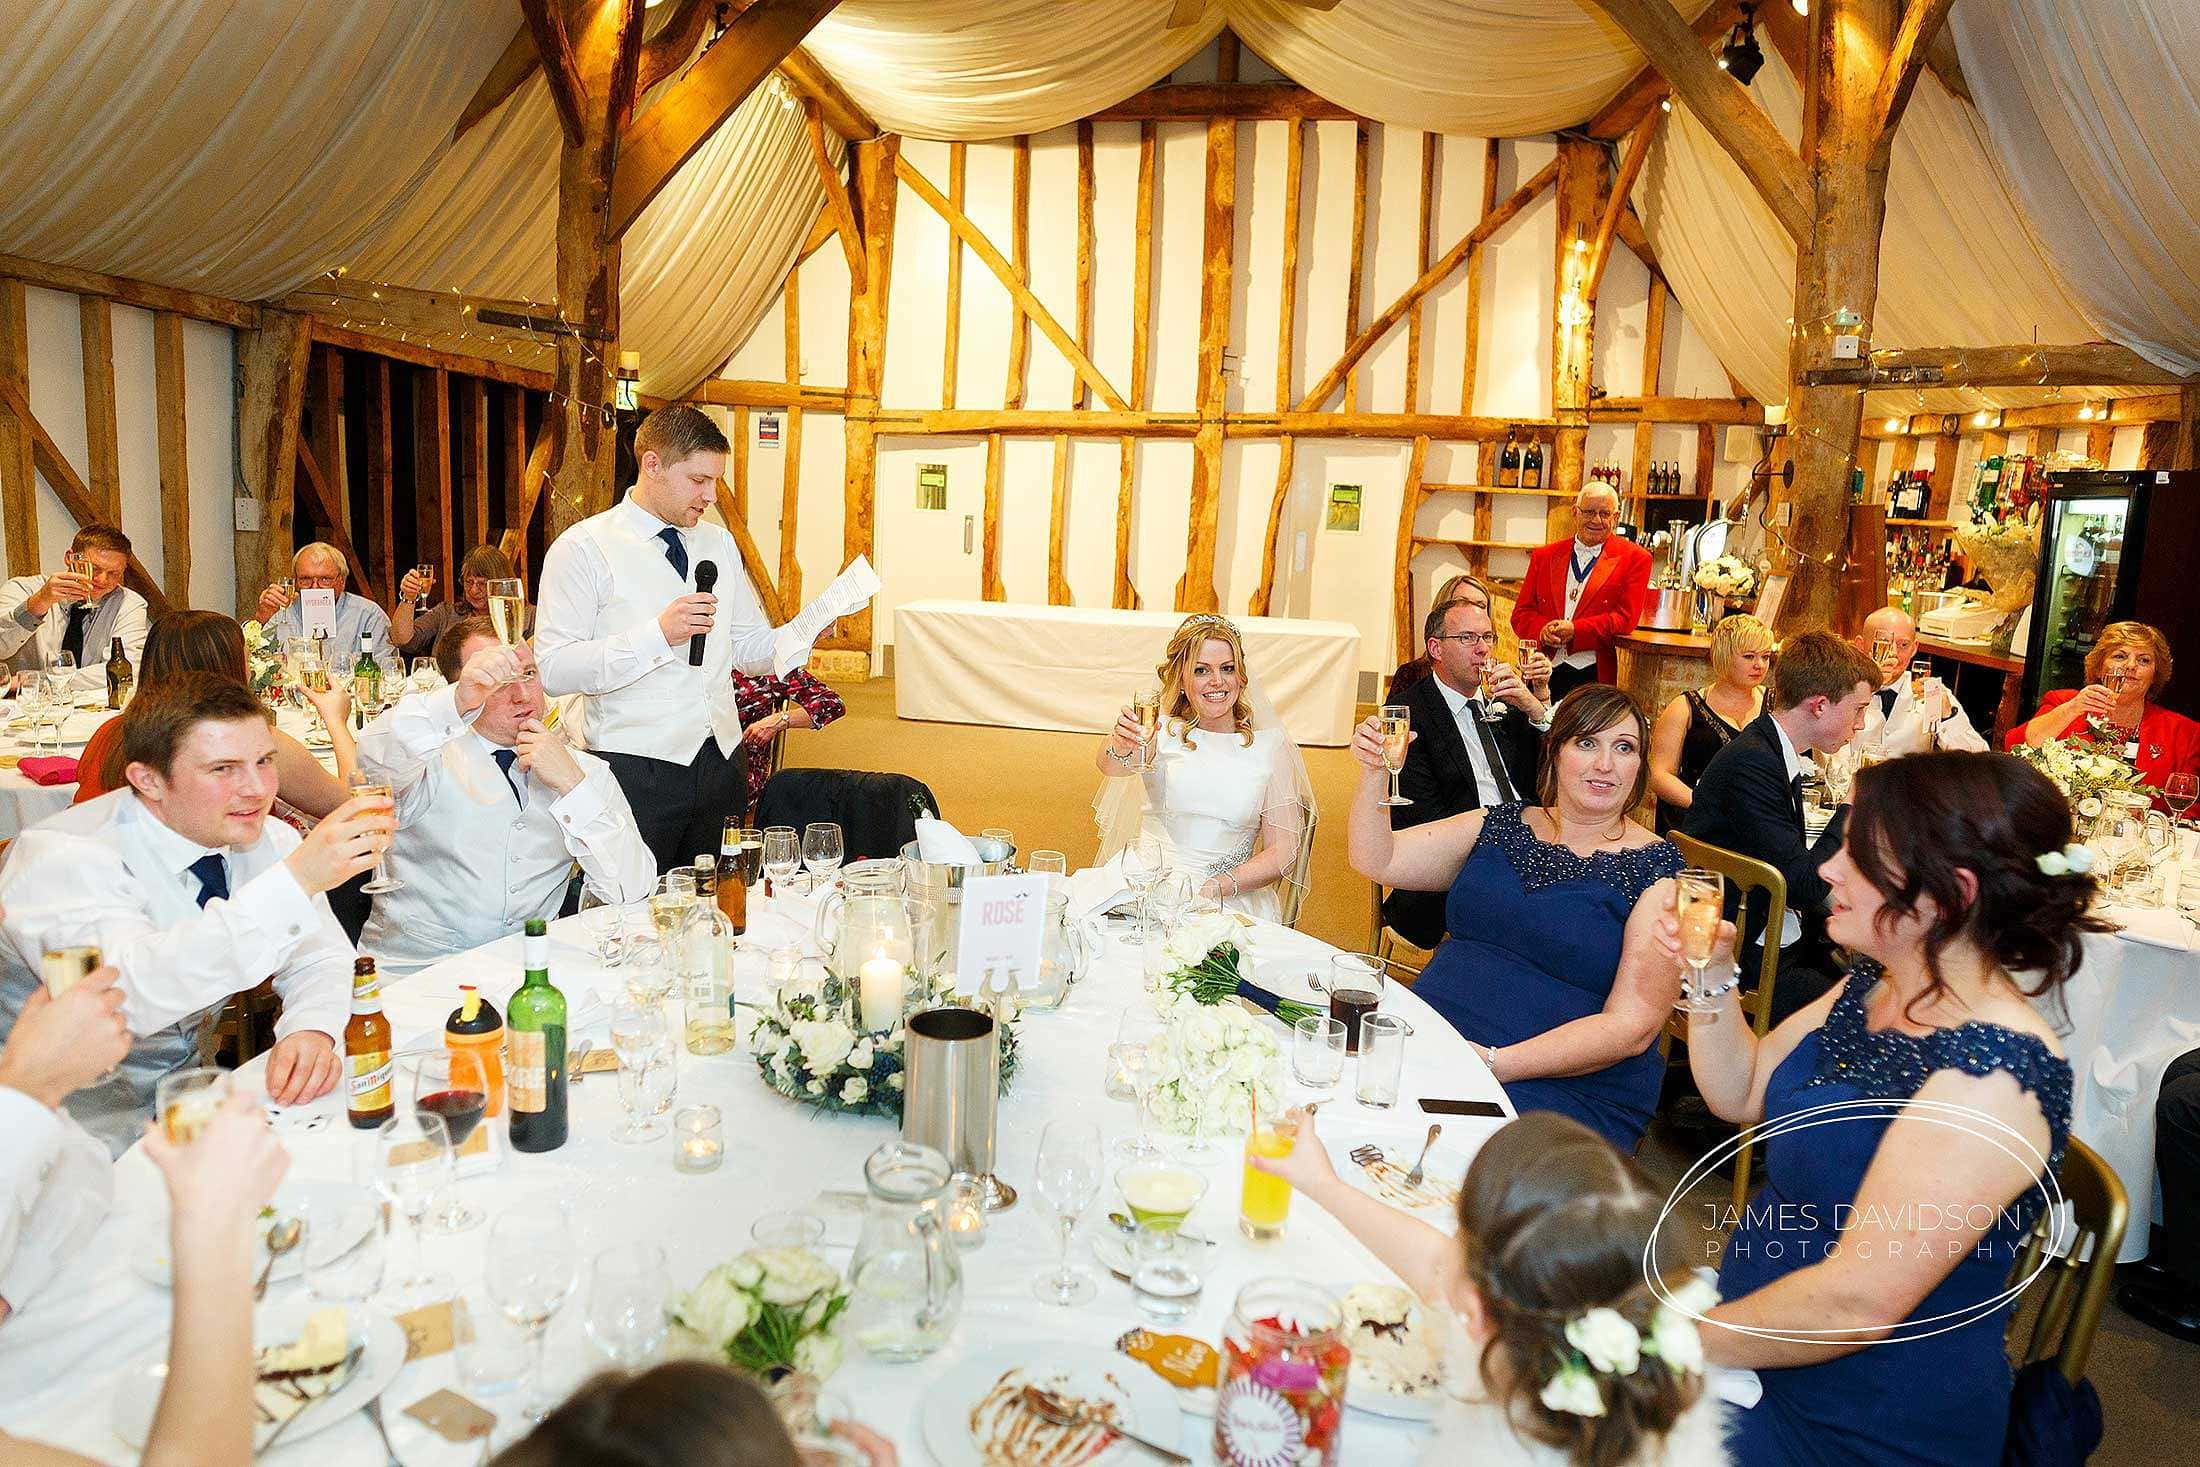 south-farm-wedding-photography-068